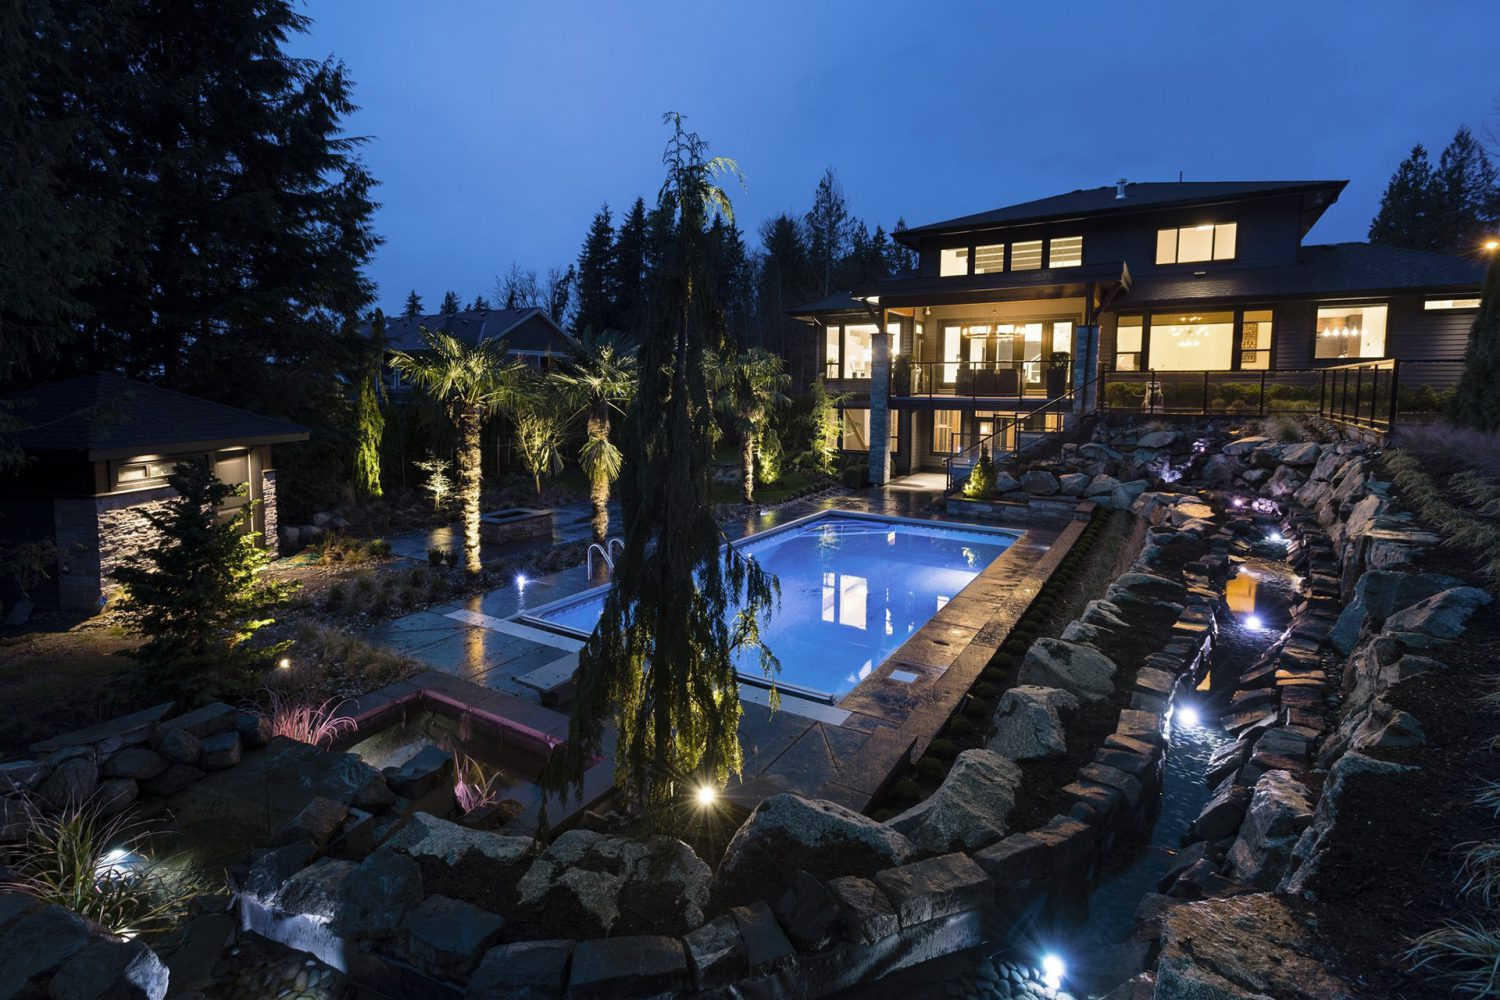 The Whisp custom designed backyard and outdoor living space by Midland Premium Properties in the Greater Vancouver area.